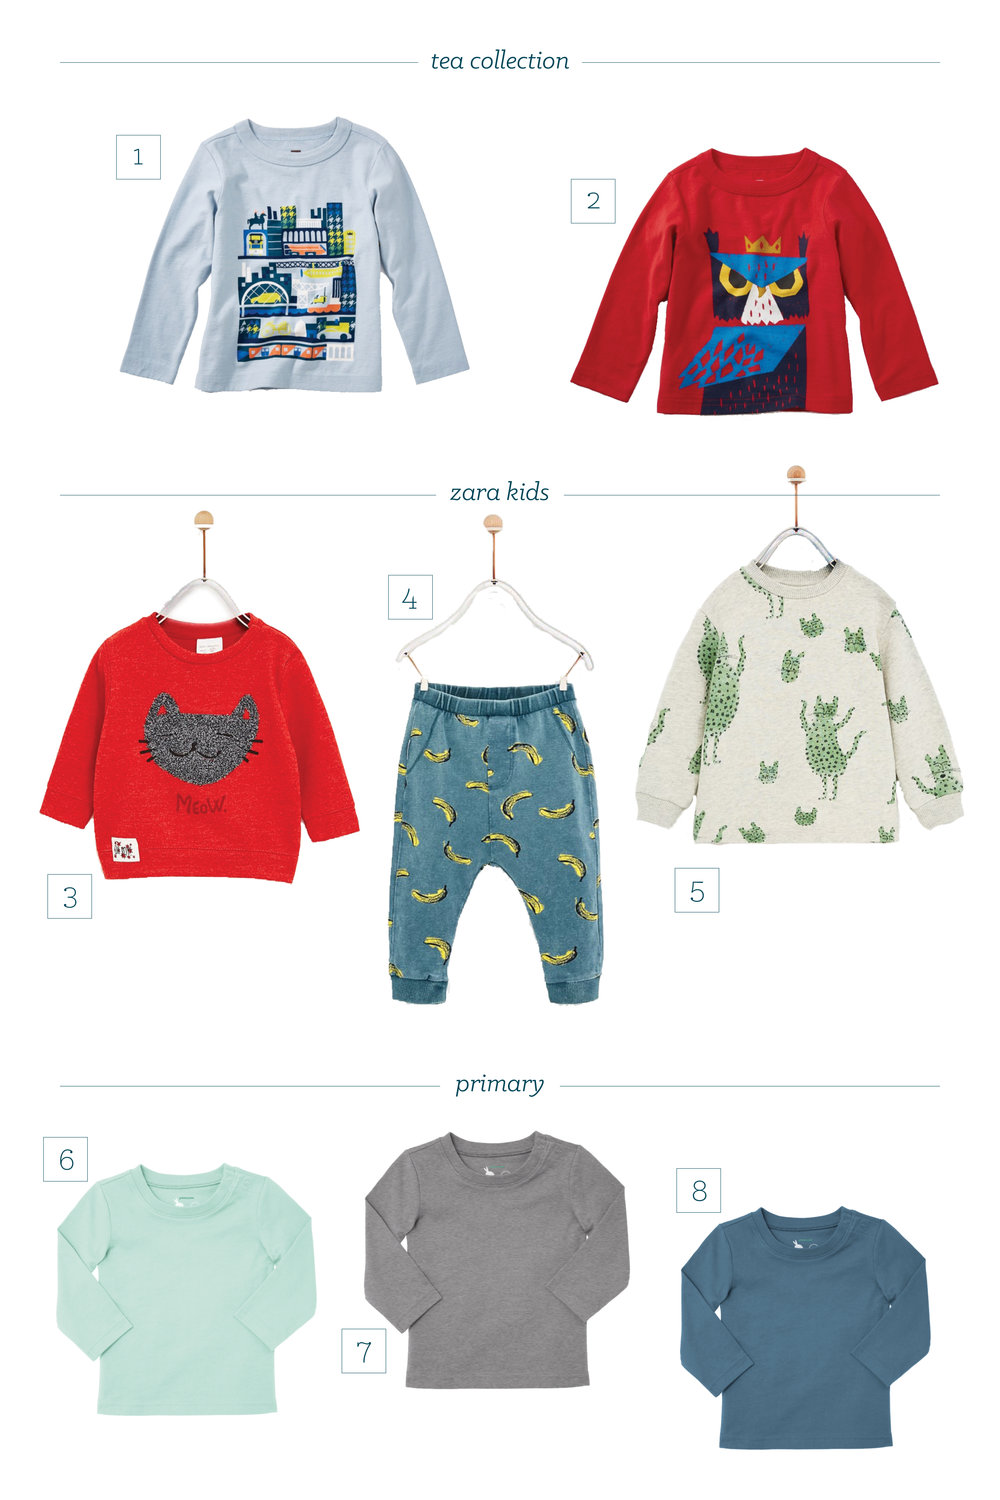 1. Glasgow Tour Baby Tee 2. Horned Owl Graphic Tee 3. Loop Pile Cat Sweatshirt 4. Banana Print Leggings 5. Animal Print Sweatshirt 6. Long Sleeve Baby Tee in Mint 7. Long Sleeve Baby Tee in Heather Gray 8. Long Sleeve Baby Tee in Slate Blue